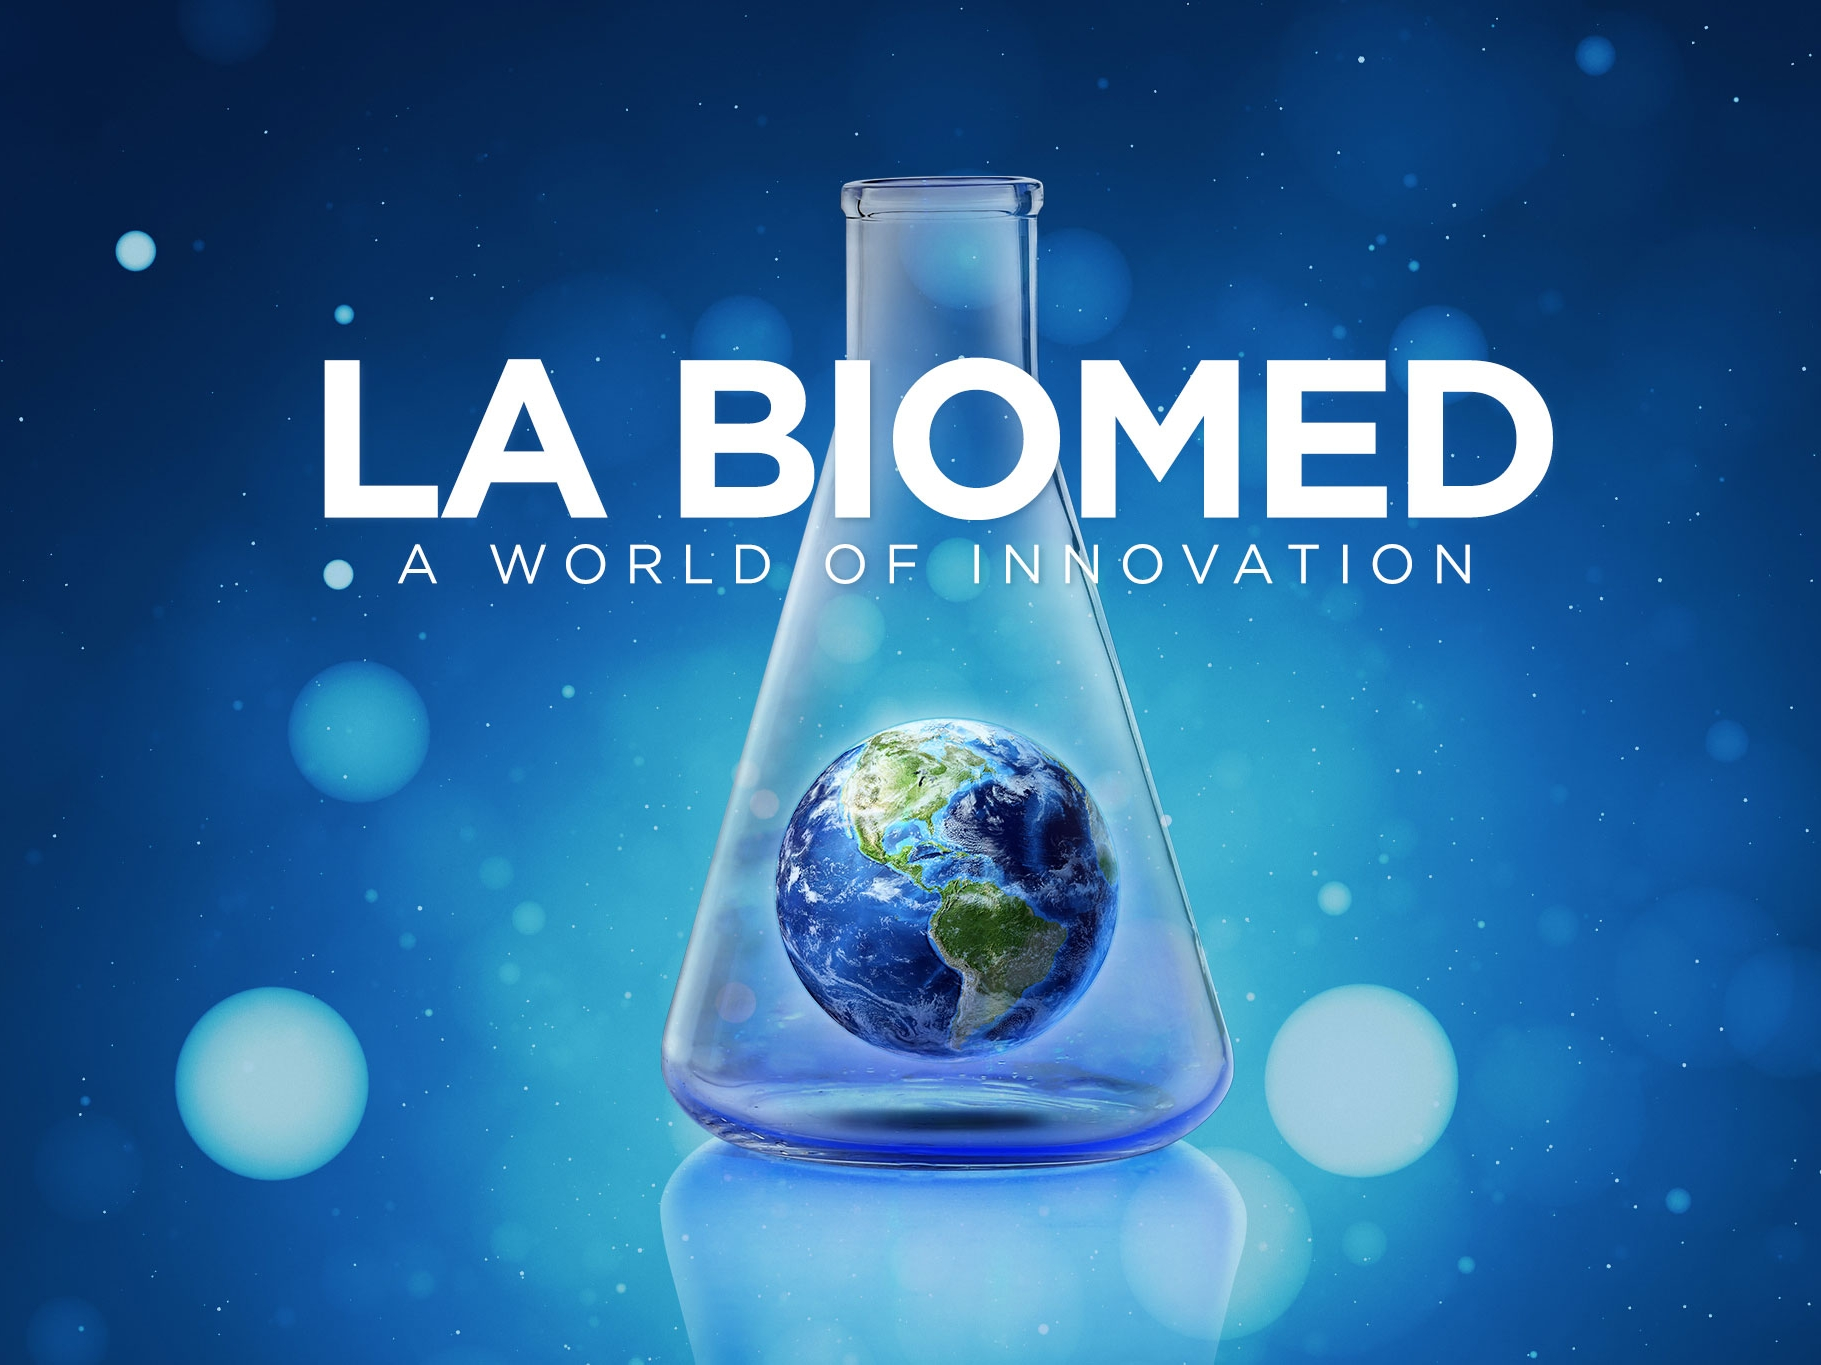 LA BioMed: A World of Innovation.